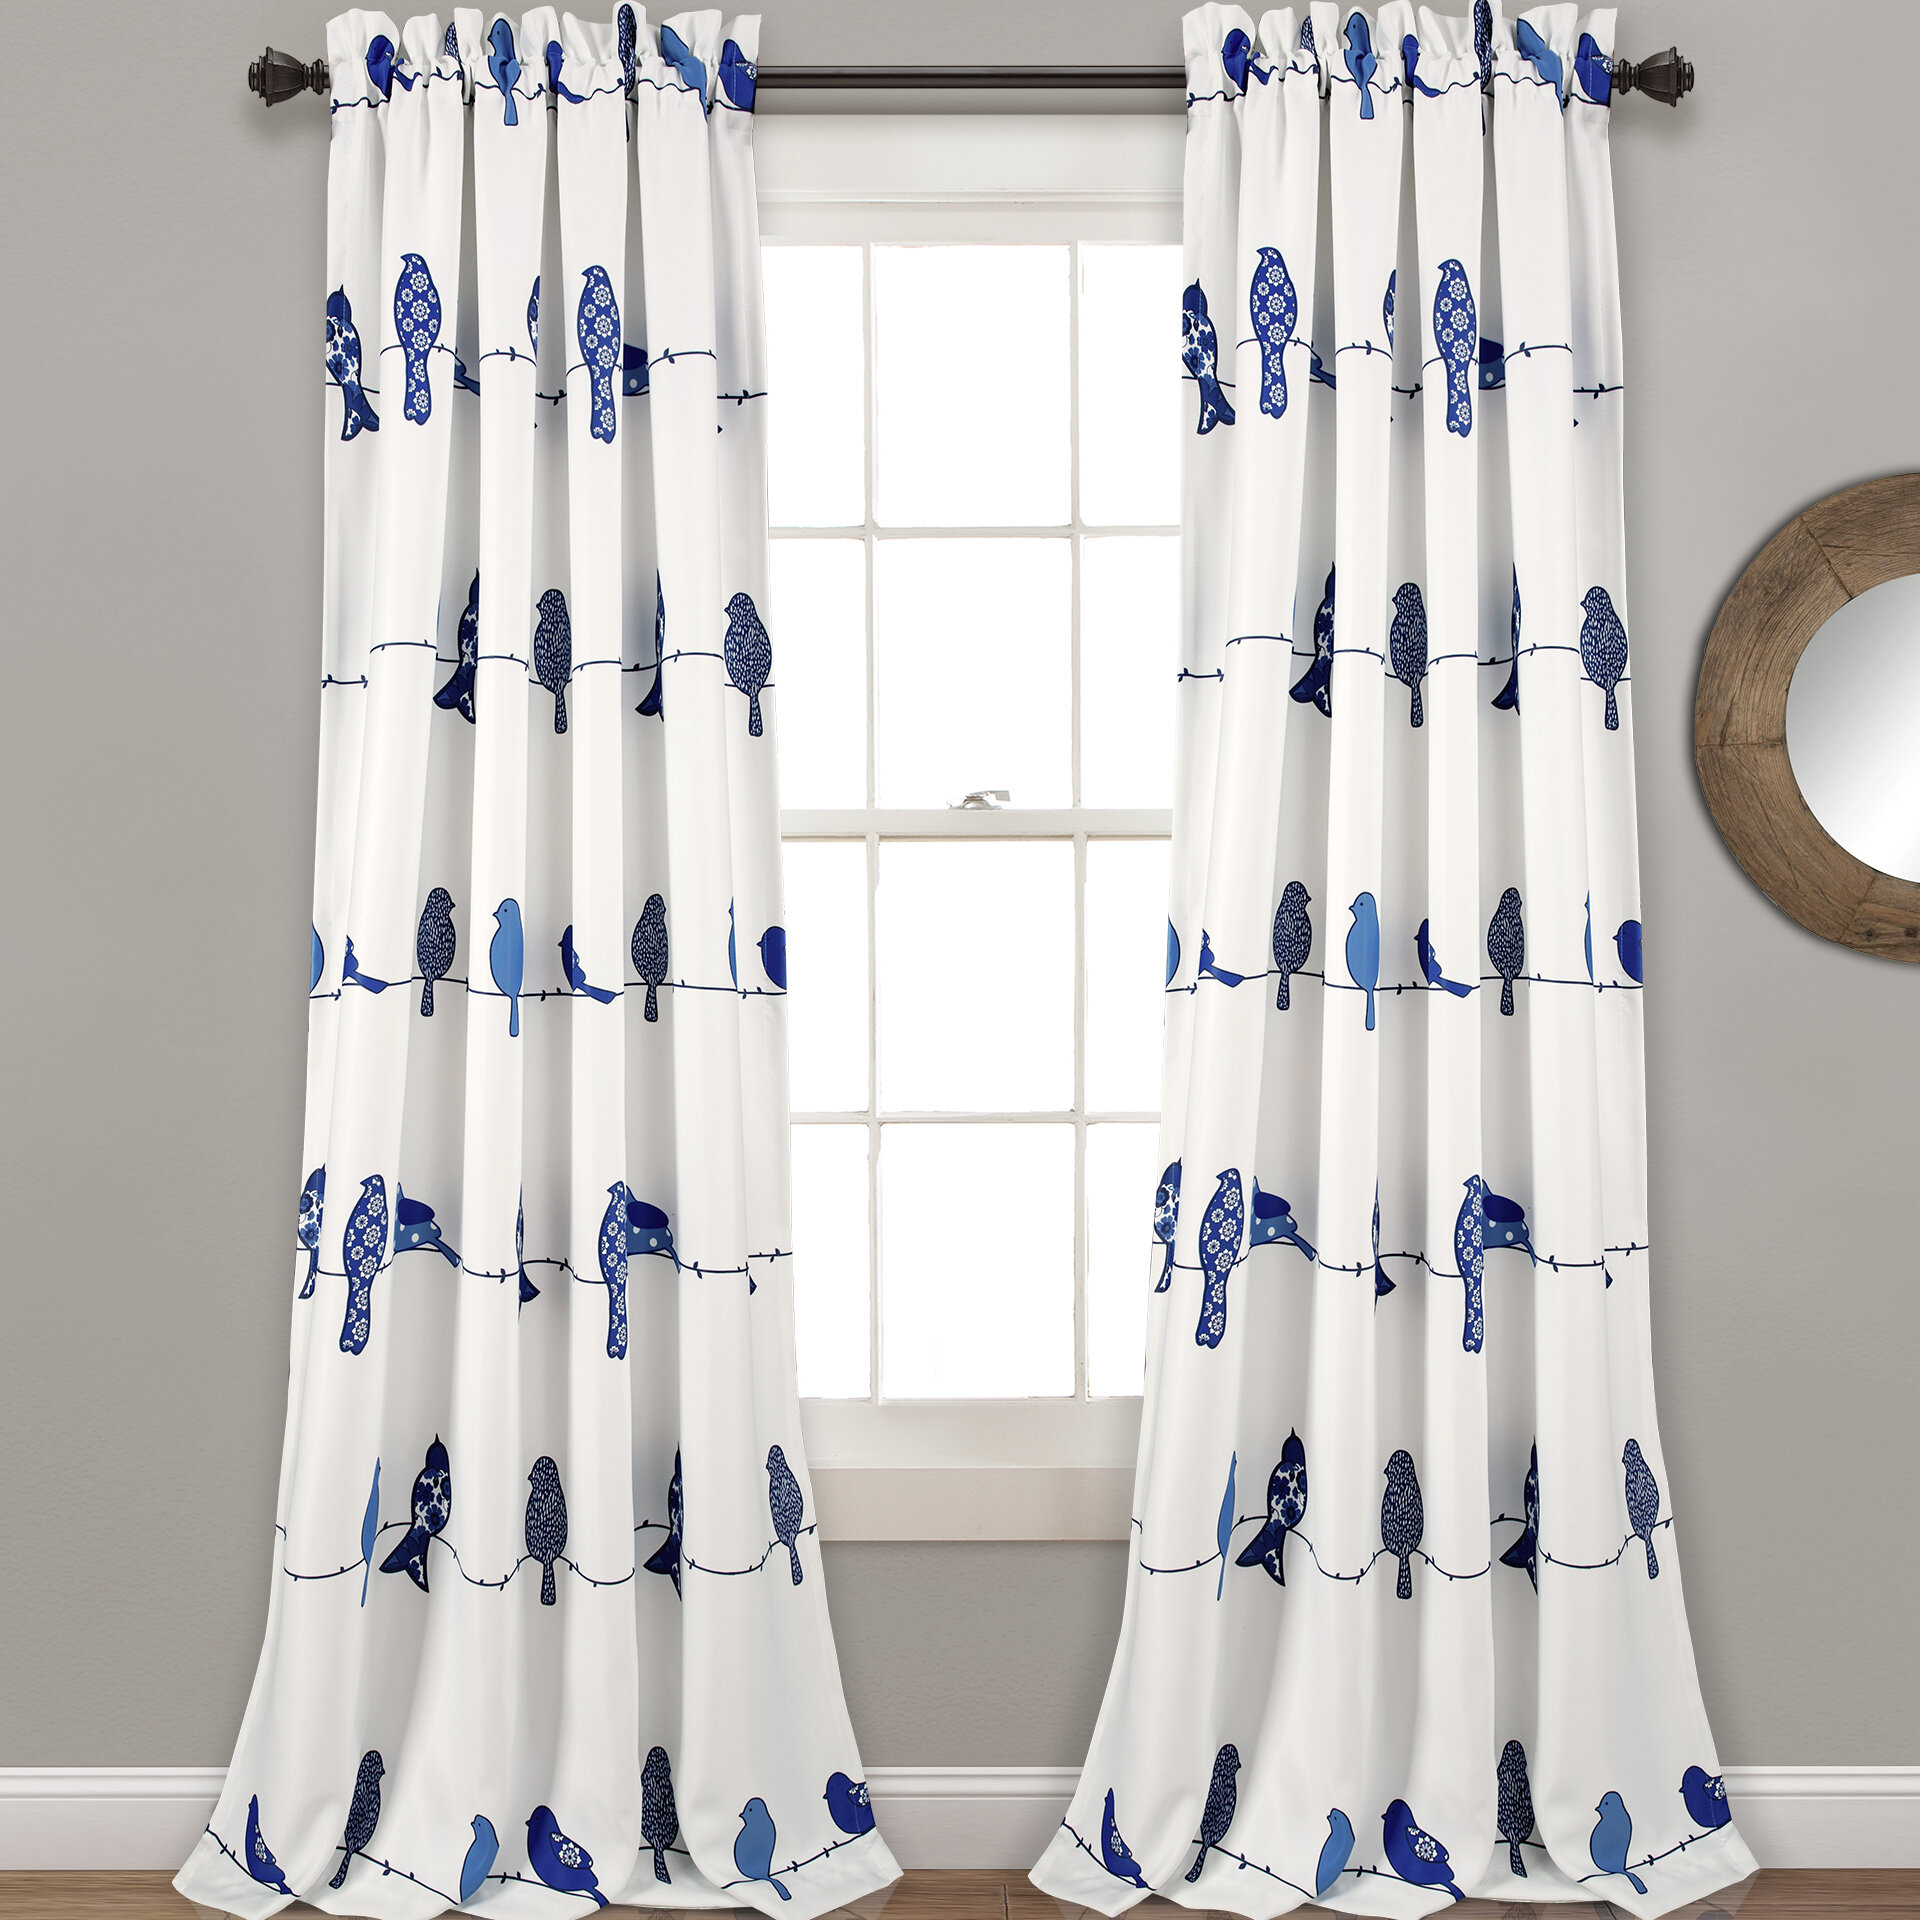 Recio Birds Room Darkening Thermal Rod Pocket Curtain Panels With Wavy Leaves Embroidered Sheer Extra Wide Grommet Curtain Panels (View 22 of 30)